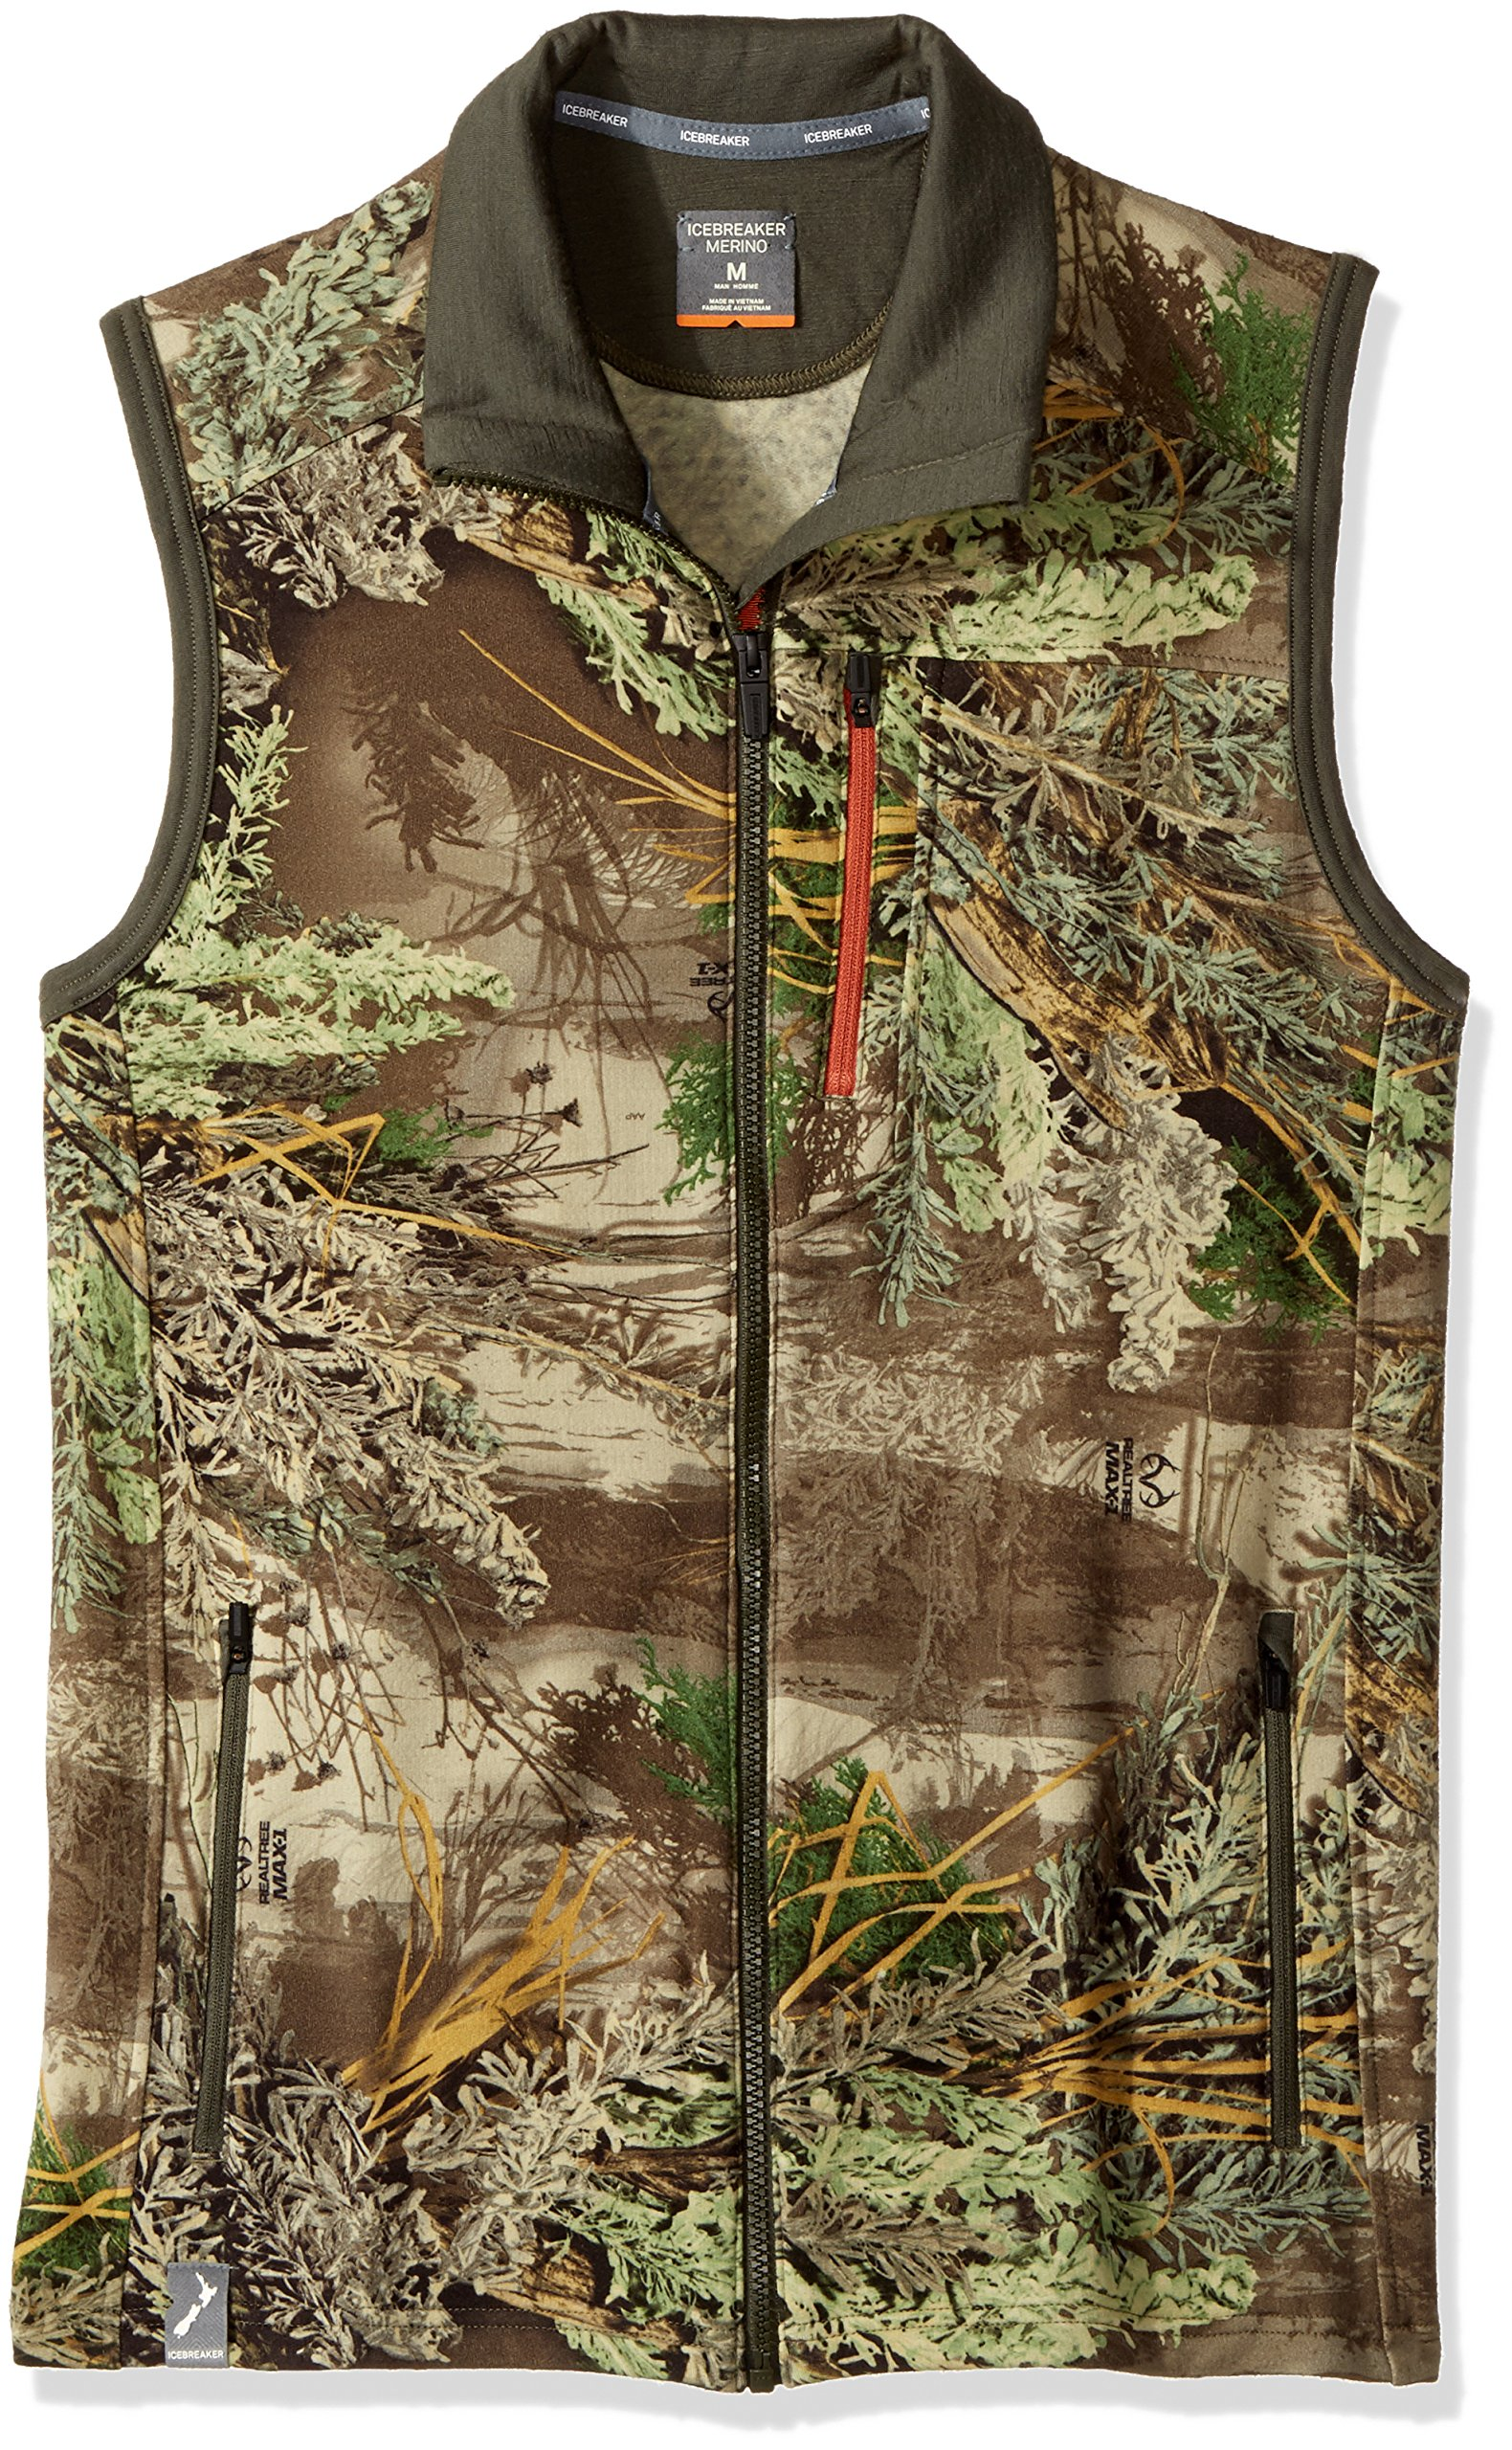 Icebreaker Men's Sierra Vest, Real Tree Max/Cargo/Copper, Large by Icebreaker Merino